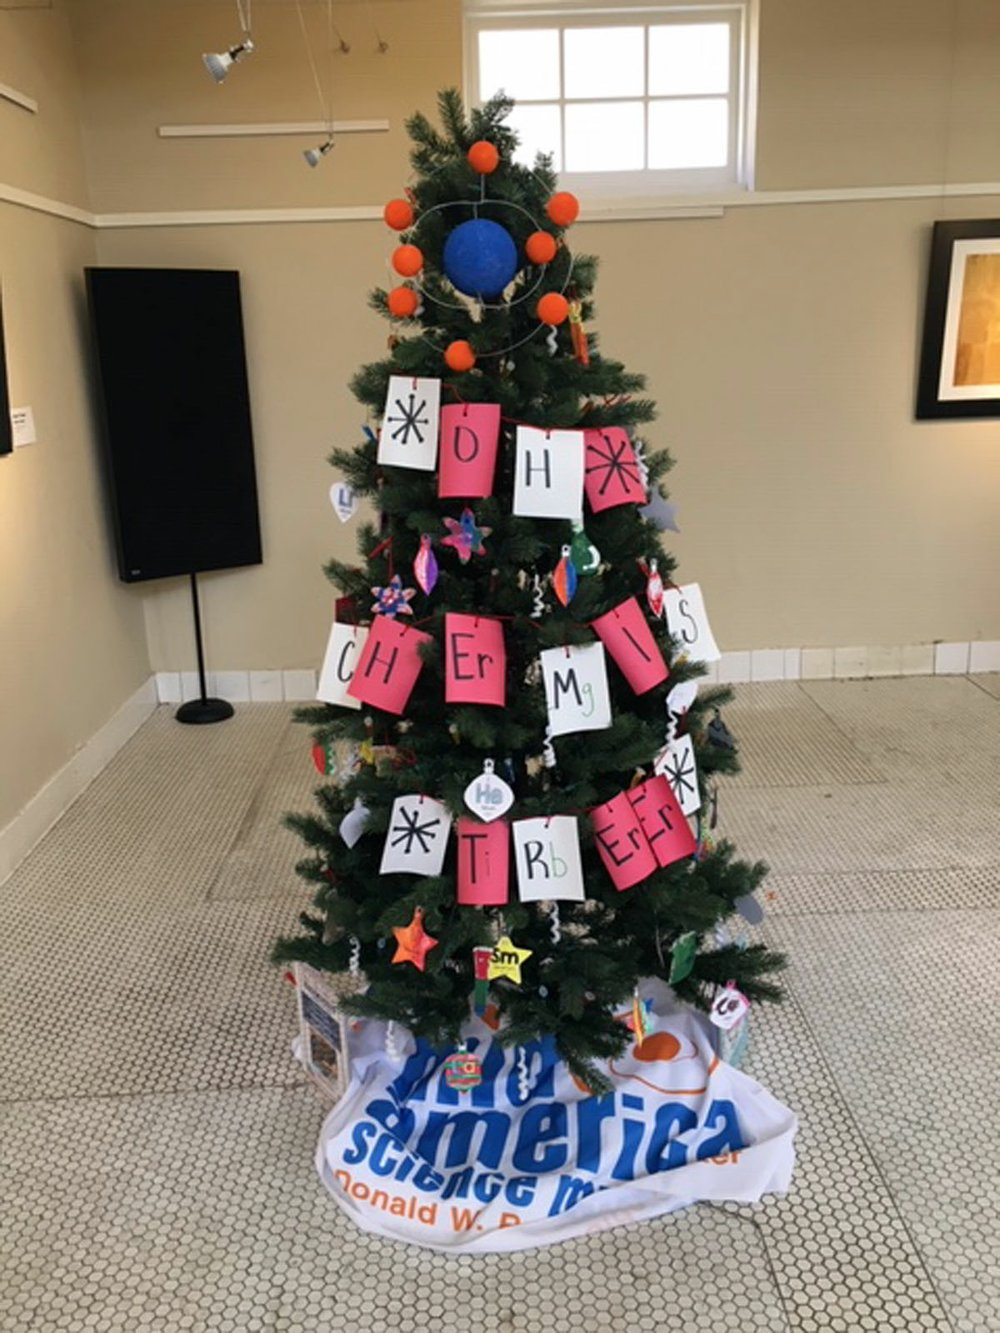 """Mid-America Science Museum's Science After School program's """"ChemisTree"""" was the winner in the nonprofit category. - Submitted photo"""